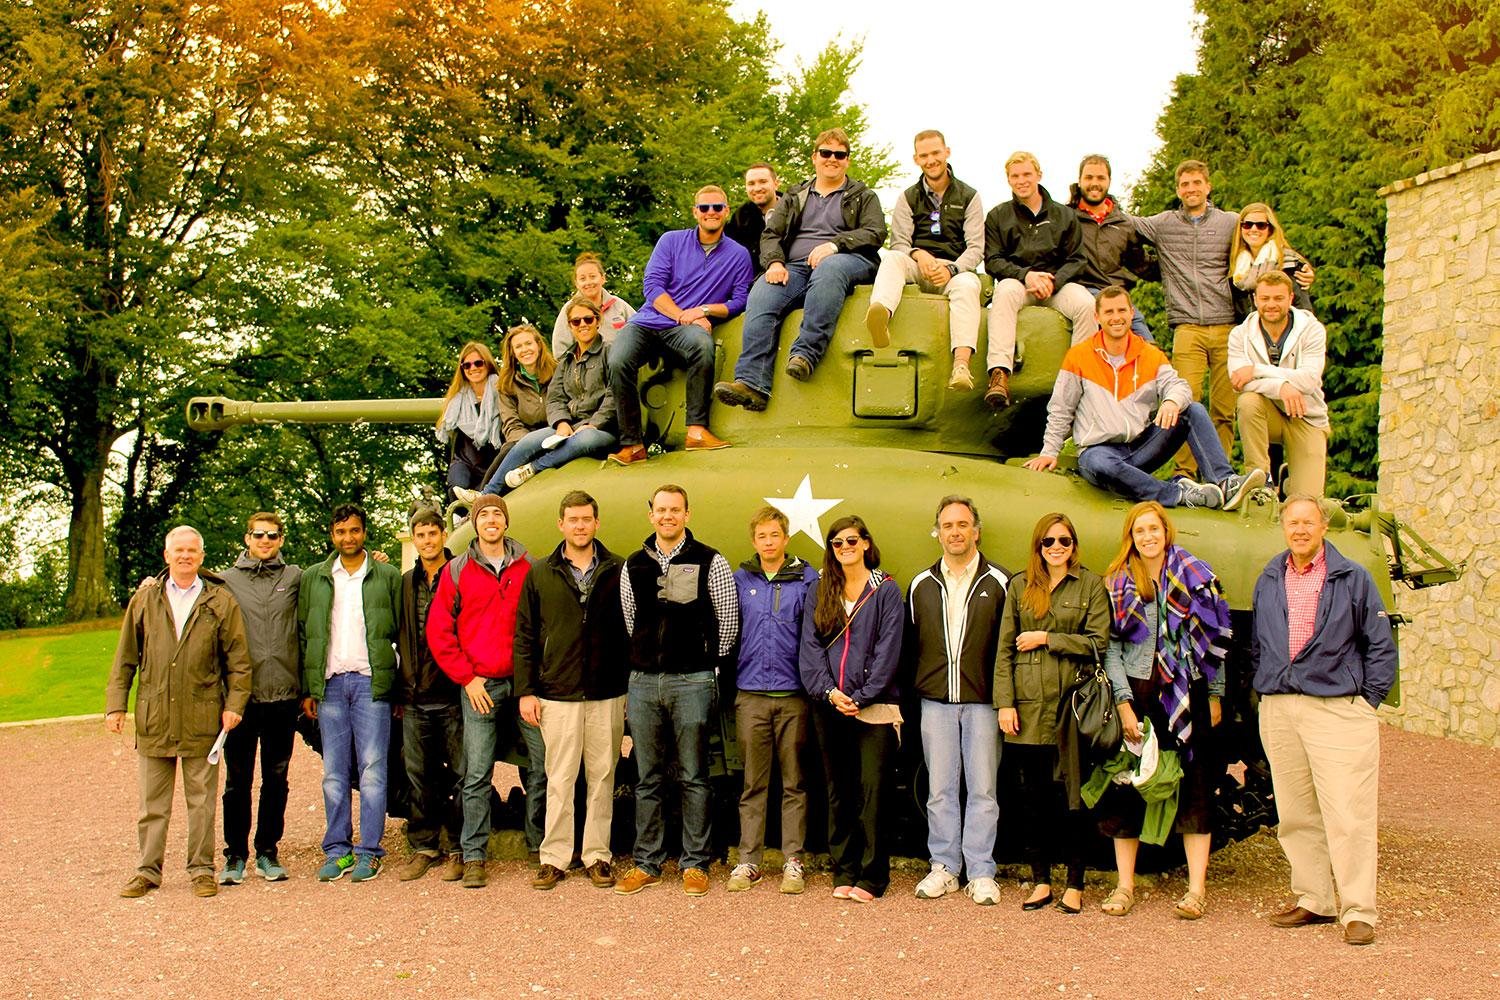 Darden students and faculty members traveled to Normandy's beaches to study the D-Day invasion. (Photos courtesy of Jocelyn Recht)